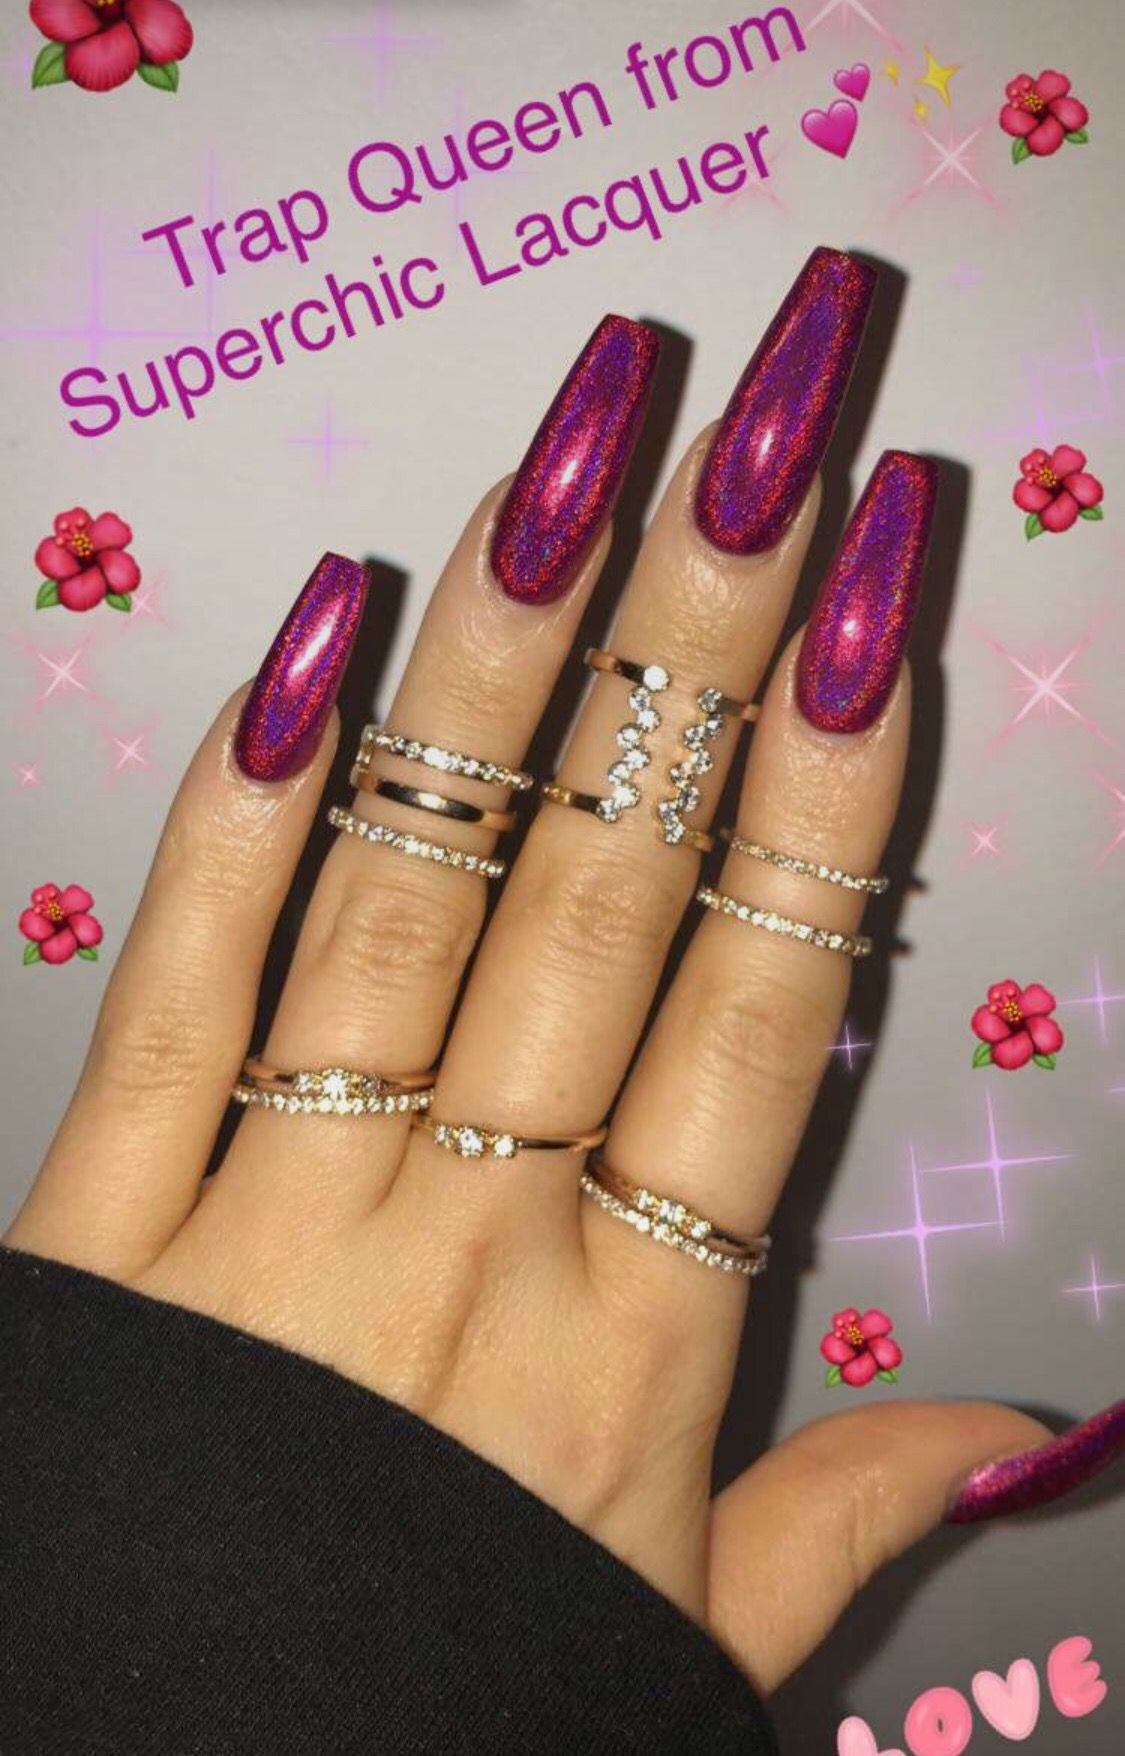 Pin by Court on NAILS  Pinterest  Acrylics Nail inspo and